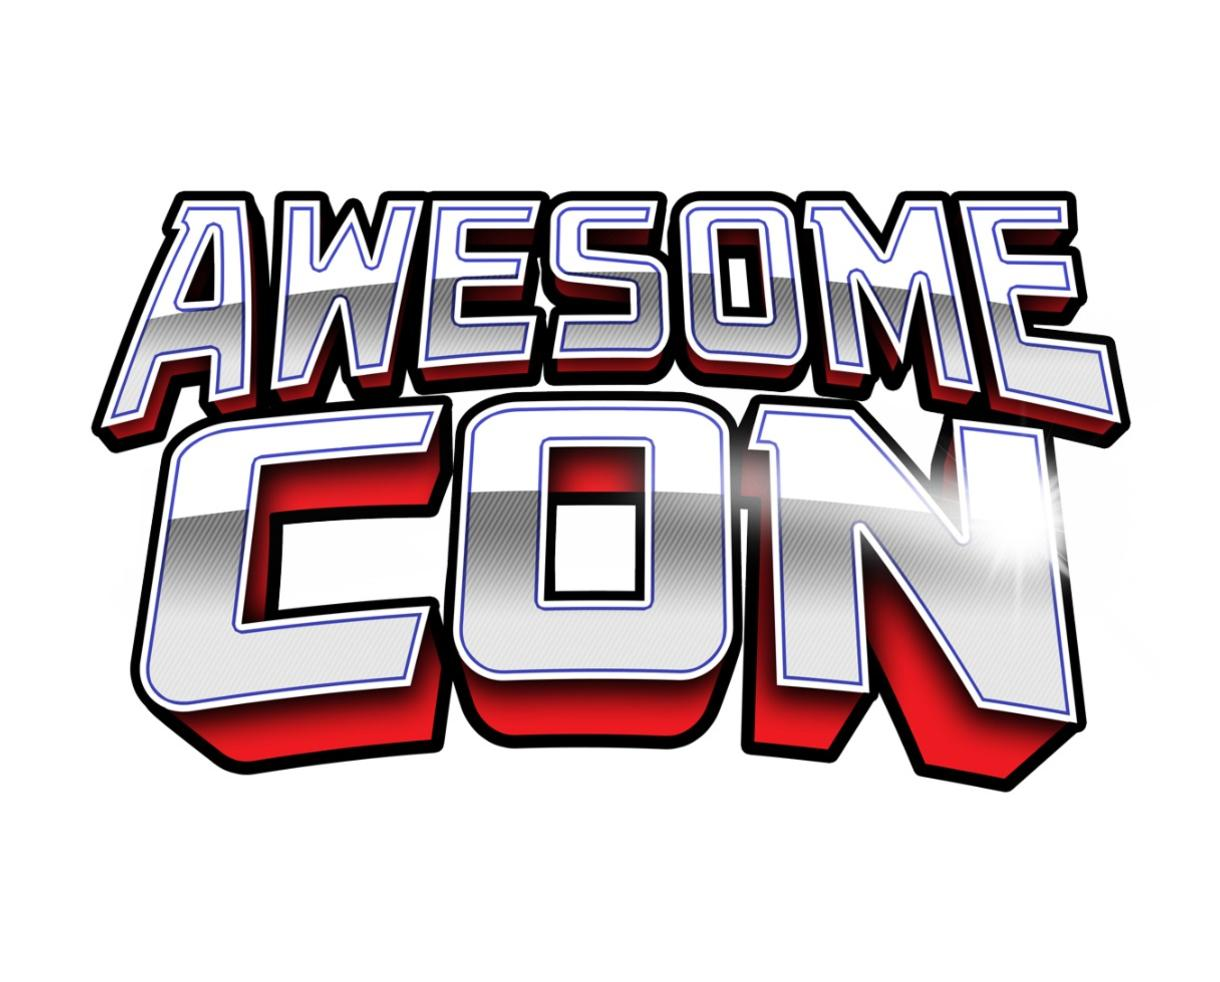 Awesome Con Family Admission Tickets - Friday, March 30th